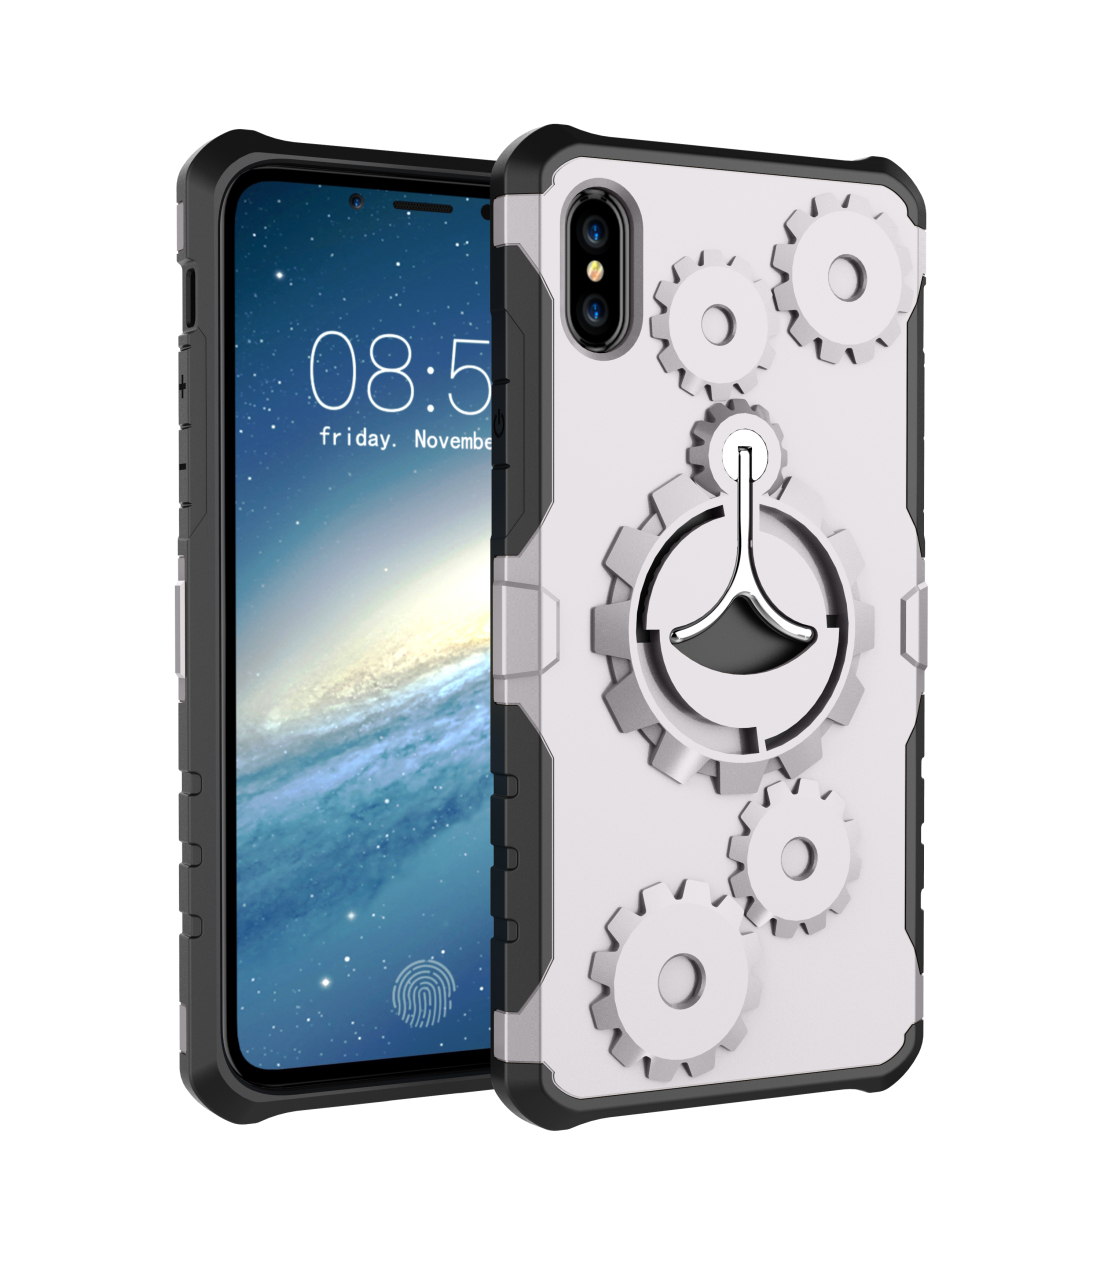 Creative Gear Bracket Mobile Phone Shell Non-slip Shockproof Full Protective Case for iPhone 8 (with Armband)